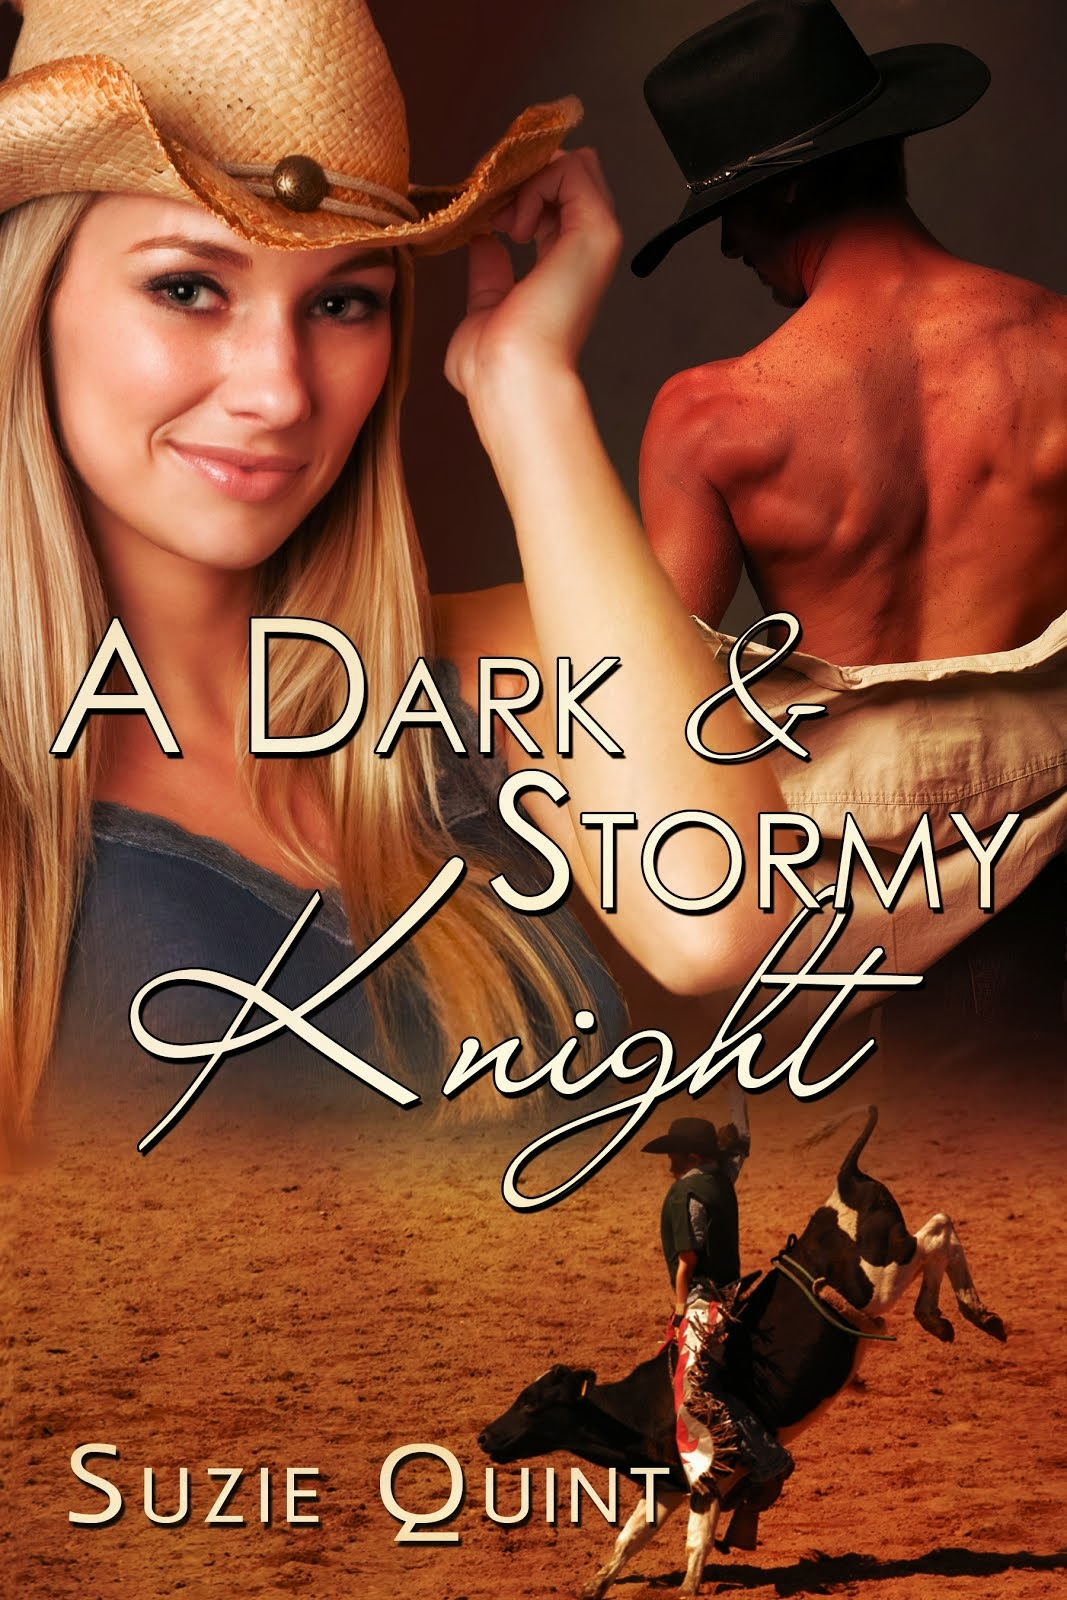 A Dark & Stormy Knight